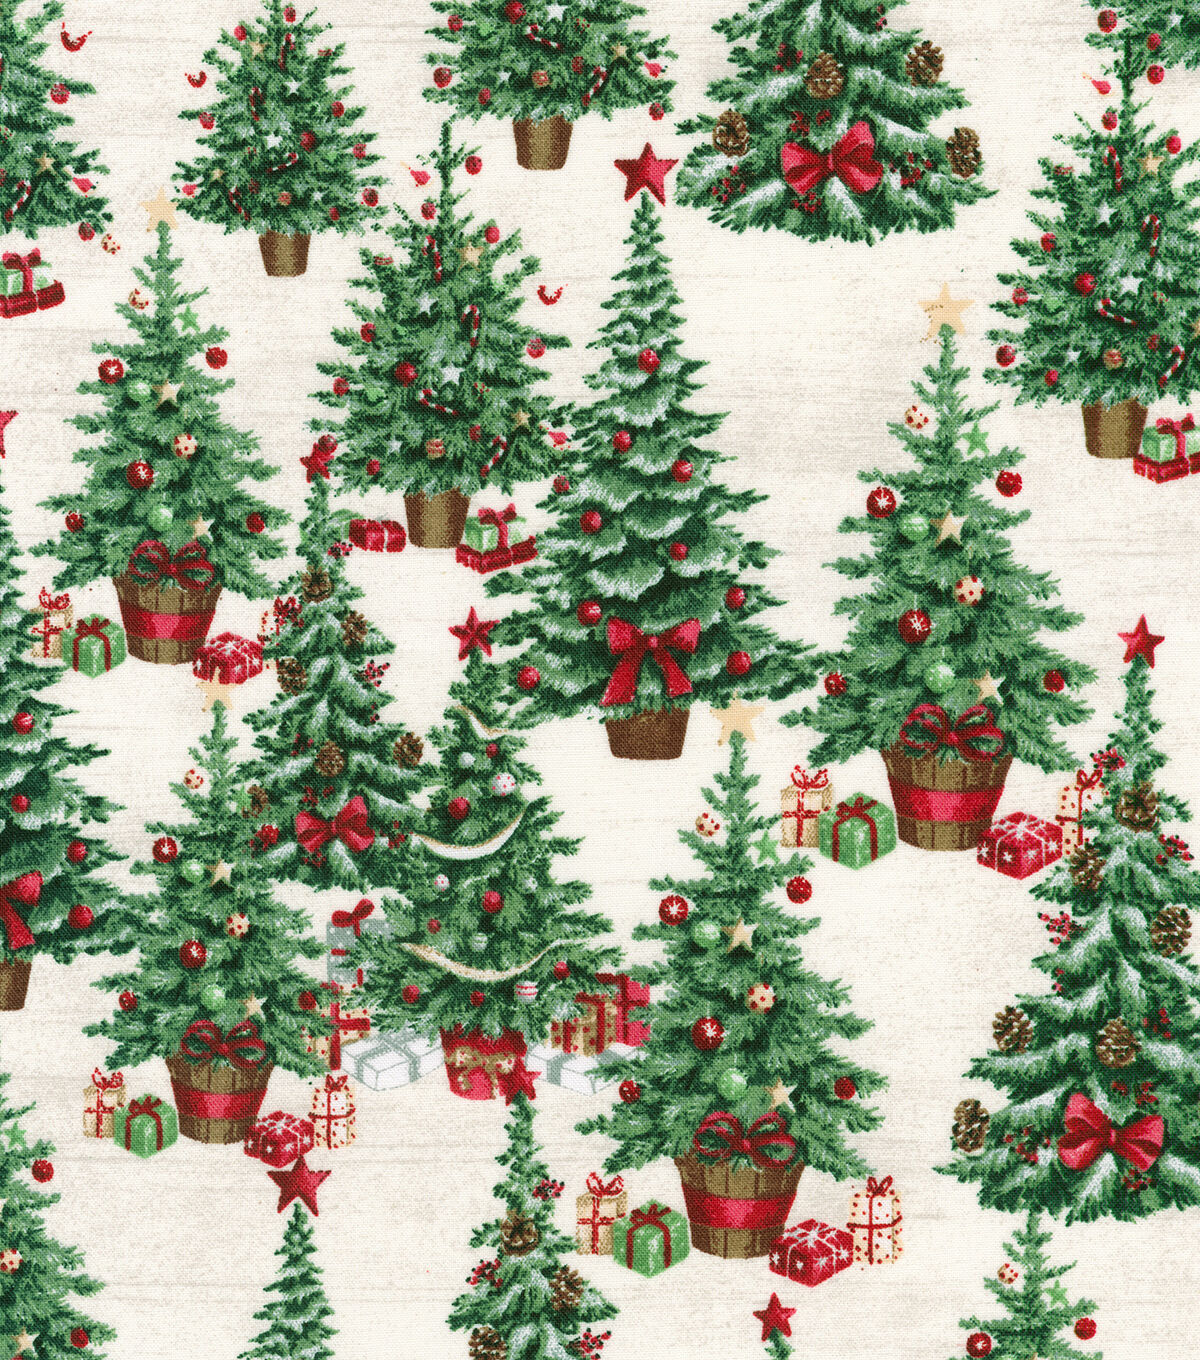 Christmas Festive Sparkling Swirling Twisting Holly Vines 100/% Cotton Fabric